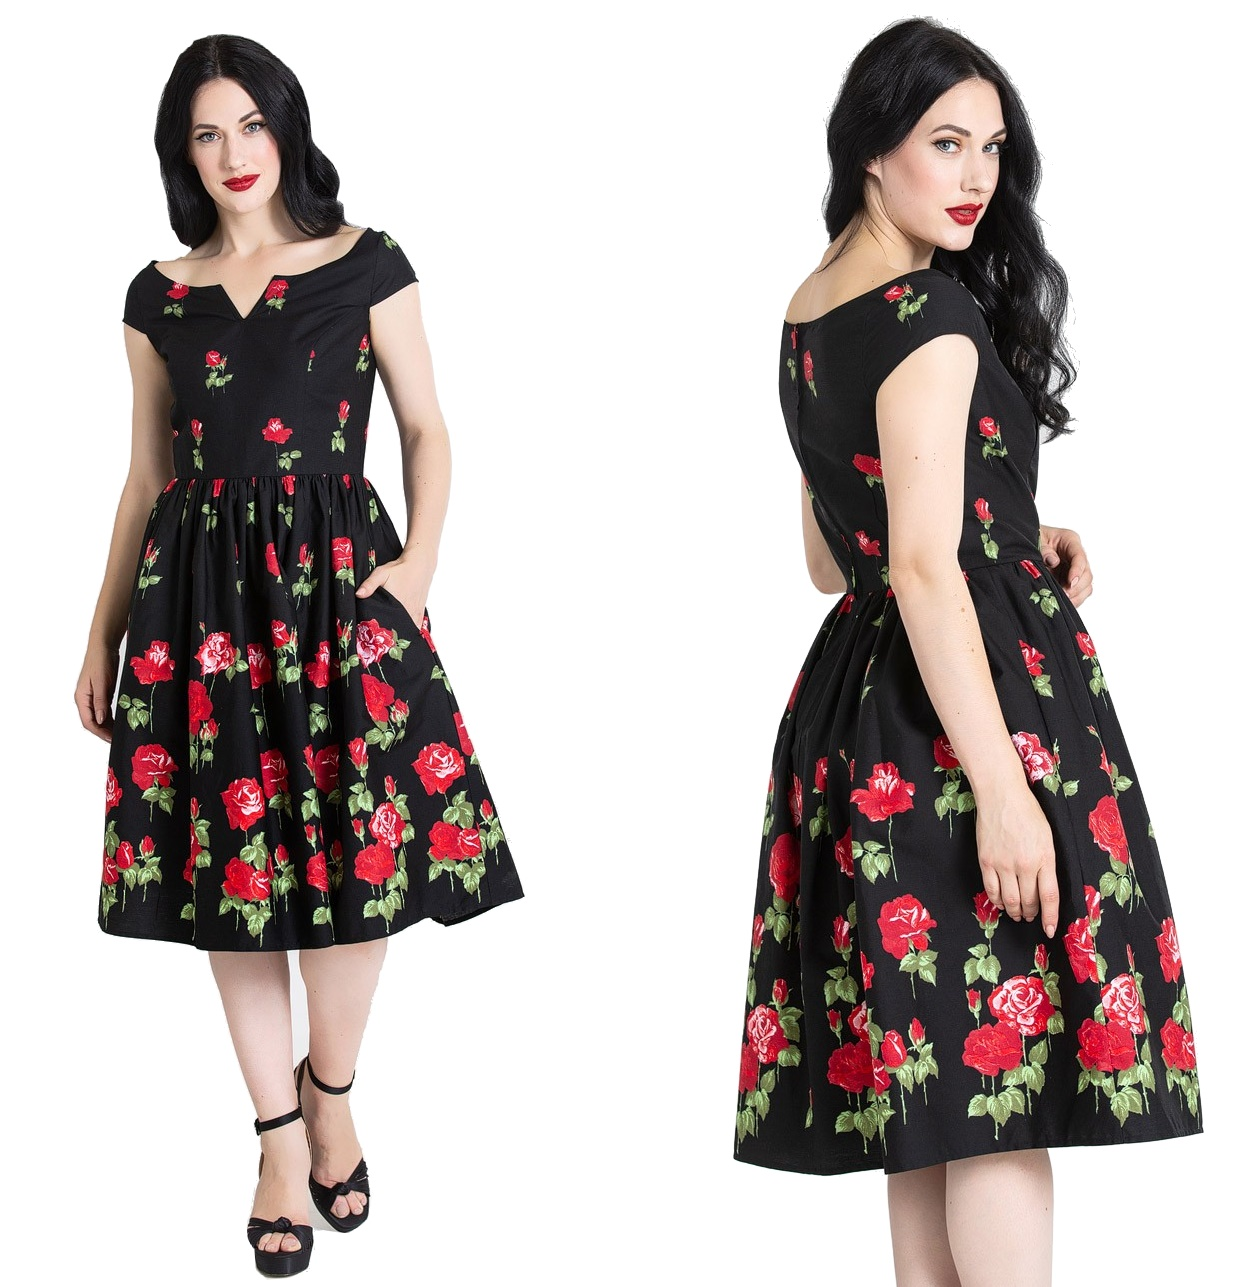 32d0a1bc5762a1 Marlena Dress Rockn Roll Kleid Rockabilly Kleid Hellbunny Plussize ...